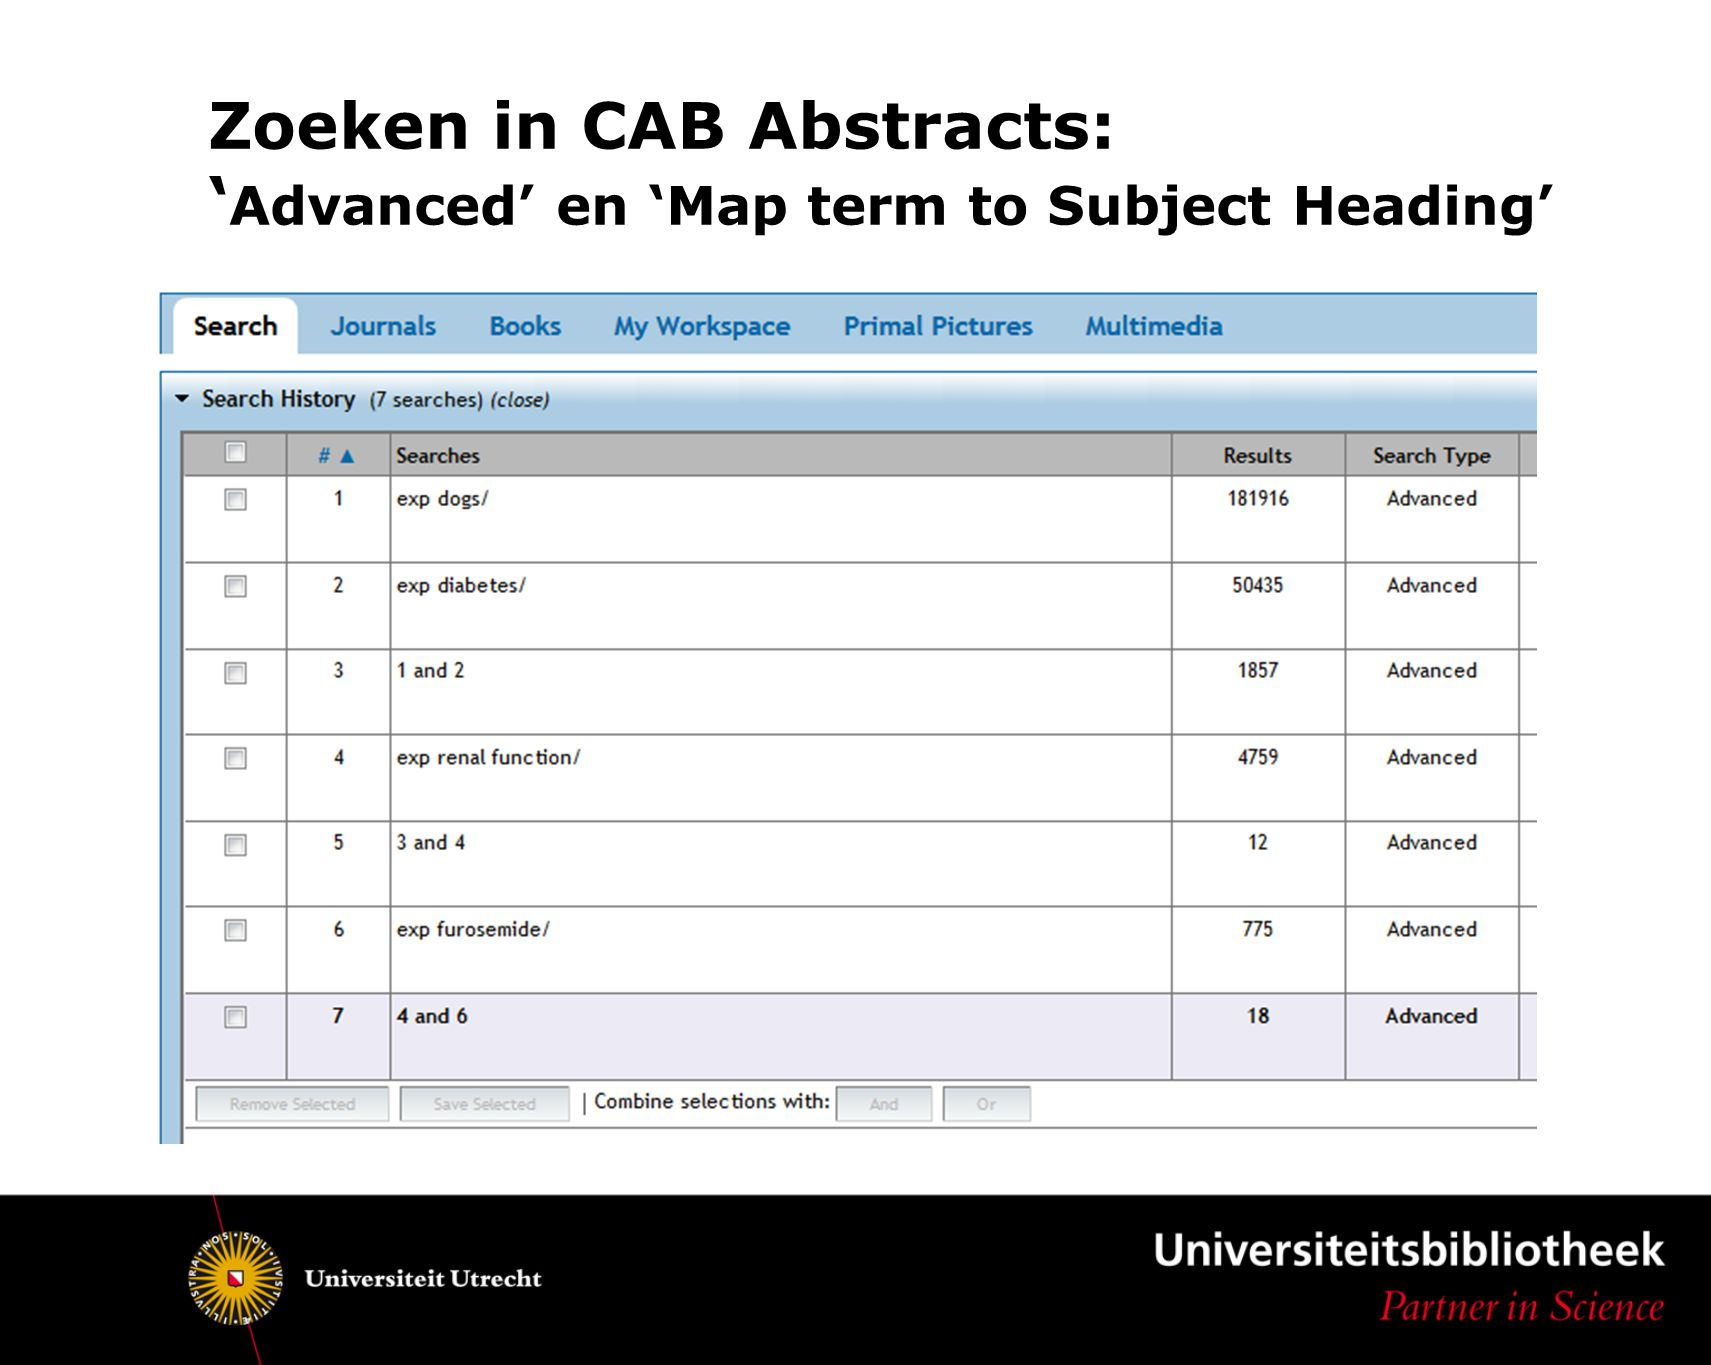 Zoeken in CAB Abstracts: ' Advanced' en 'Map term to Subject Heading'